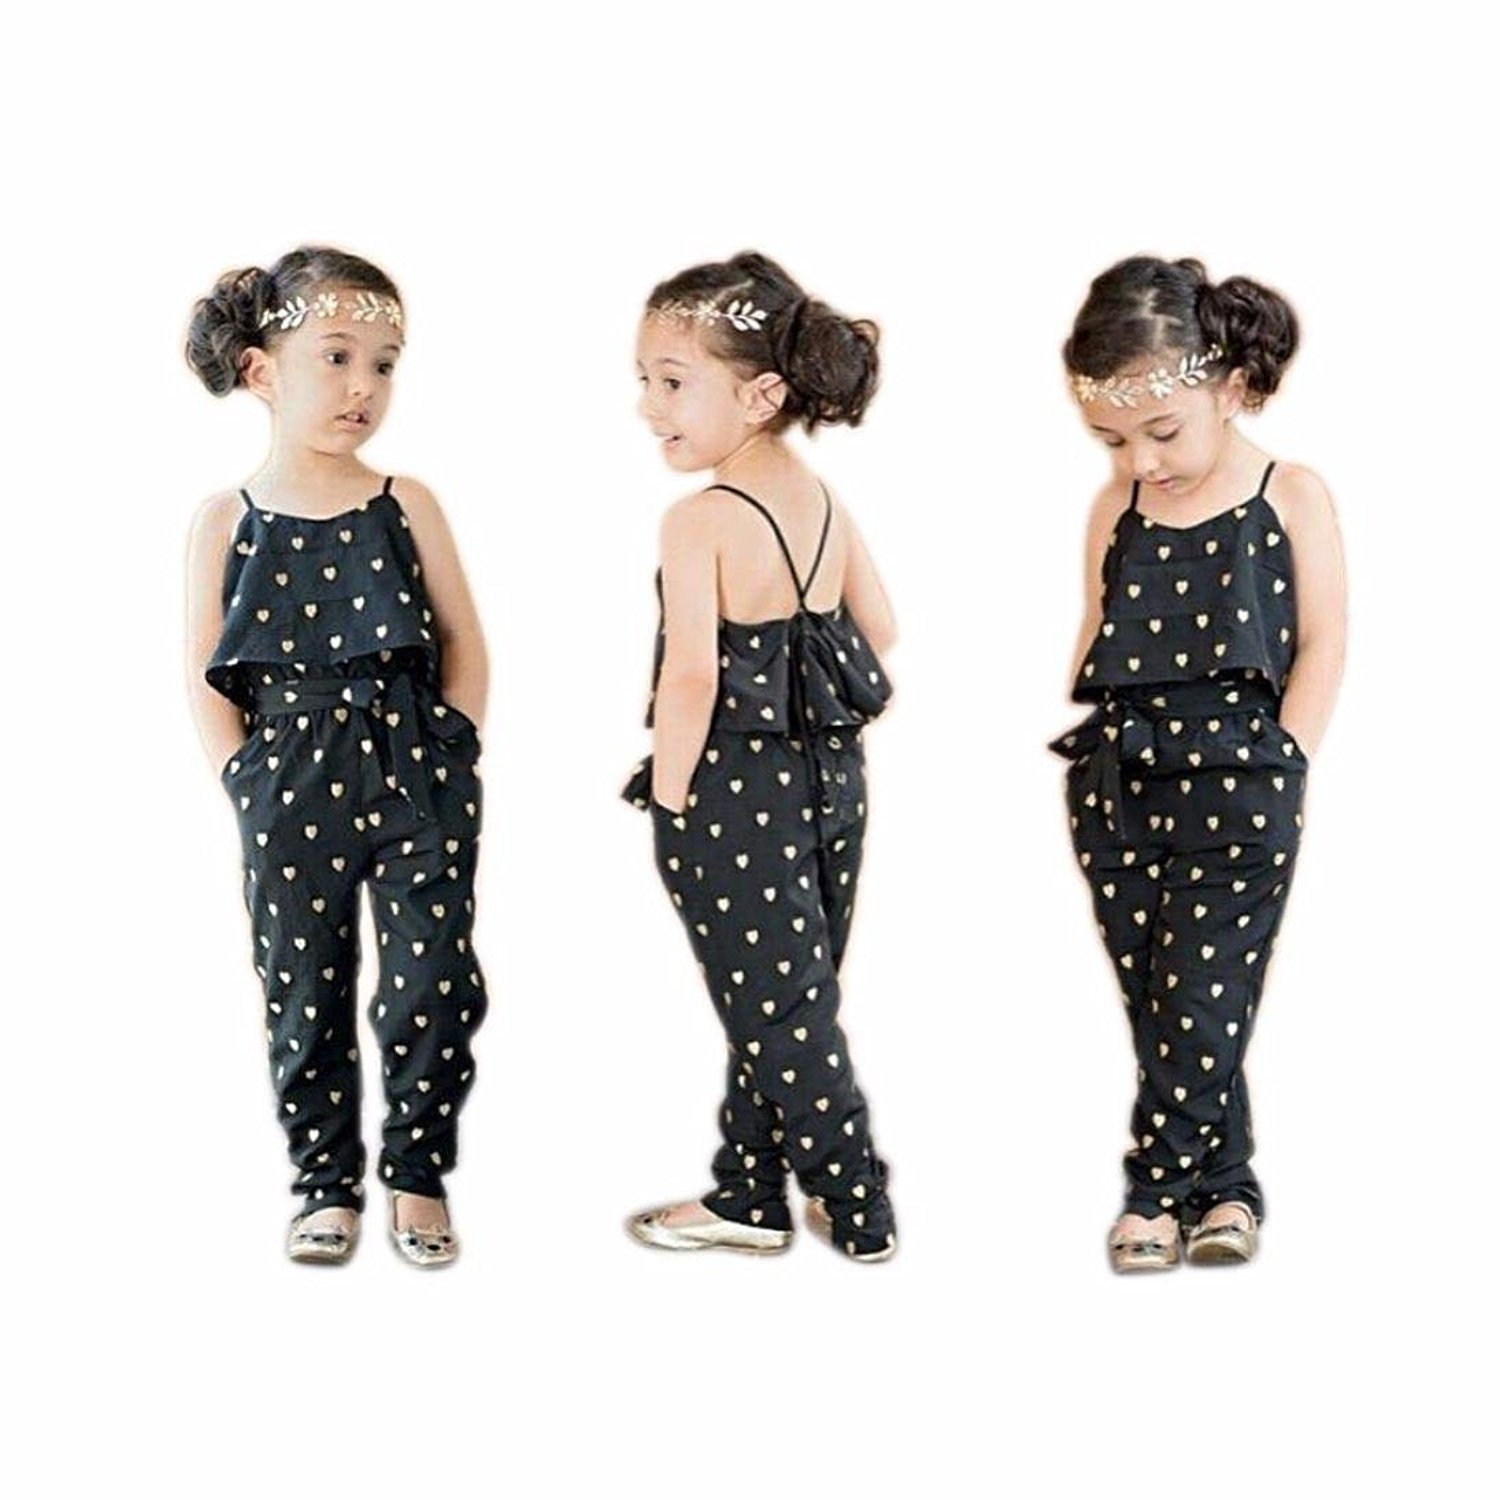 LUQUAN Kids Girls Love Heart Straps Rompers Jumpsuits Piece Pants Sets 3-4Y